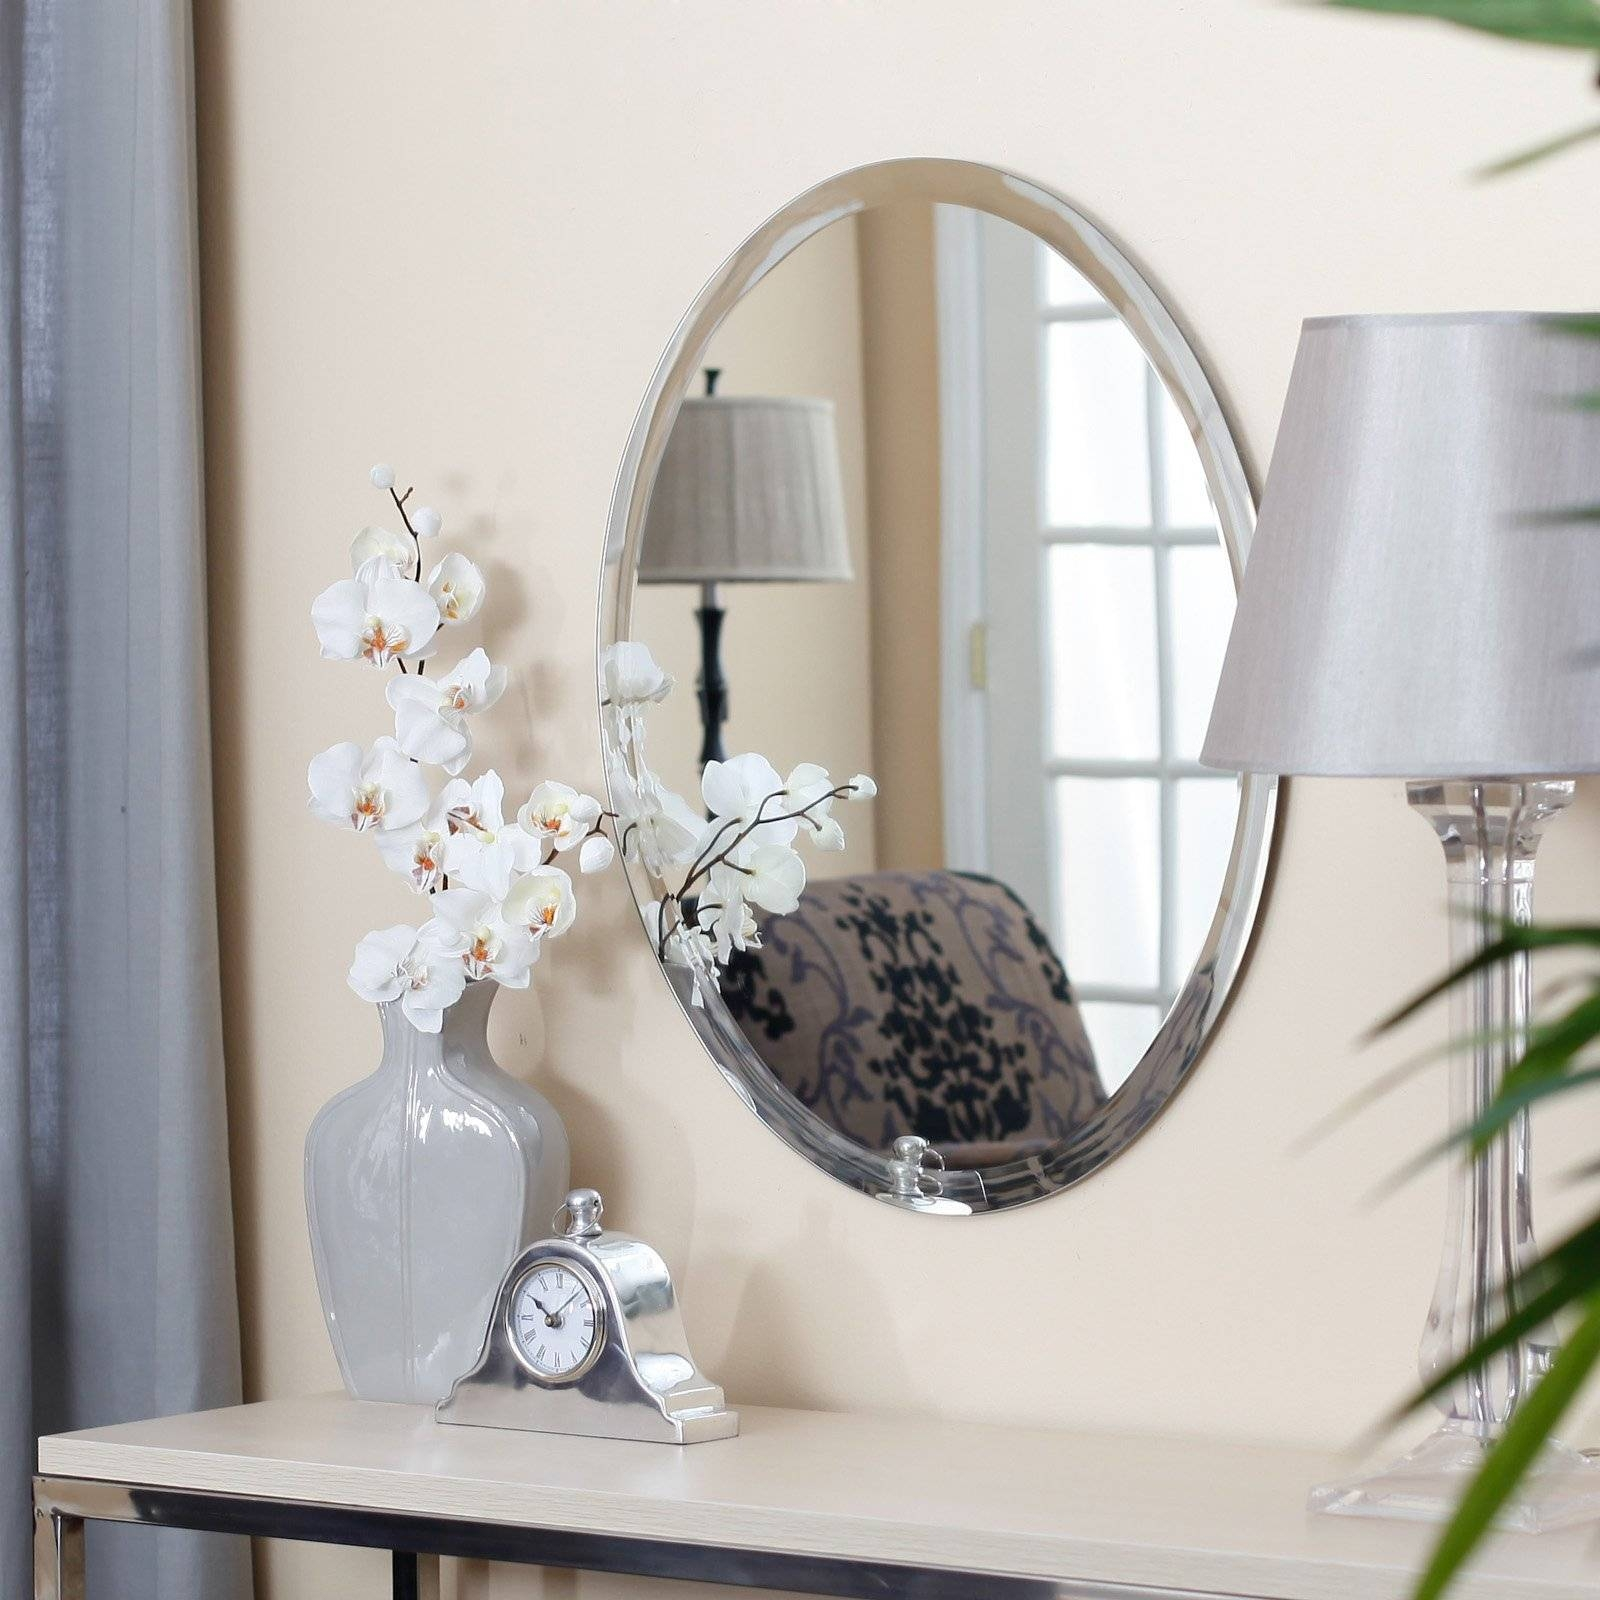 Uttermost Frameless Oval Beveled Vanity Mirror | Hayneedle intended for Bevelled Oval Mirrors (Image 14 of 15)